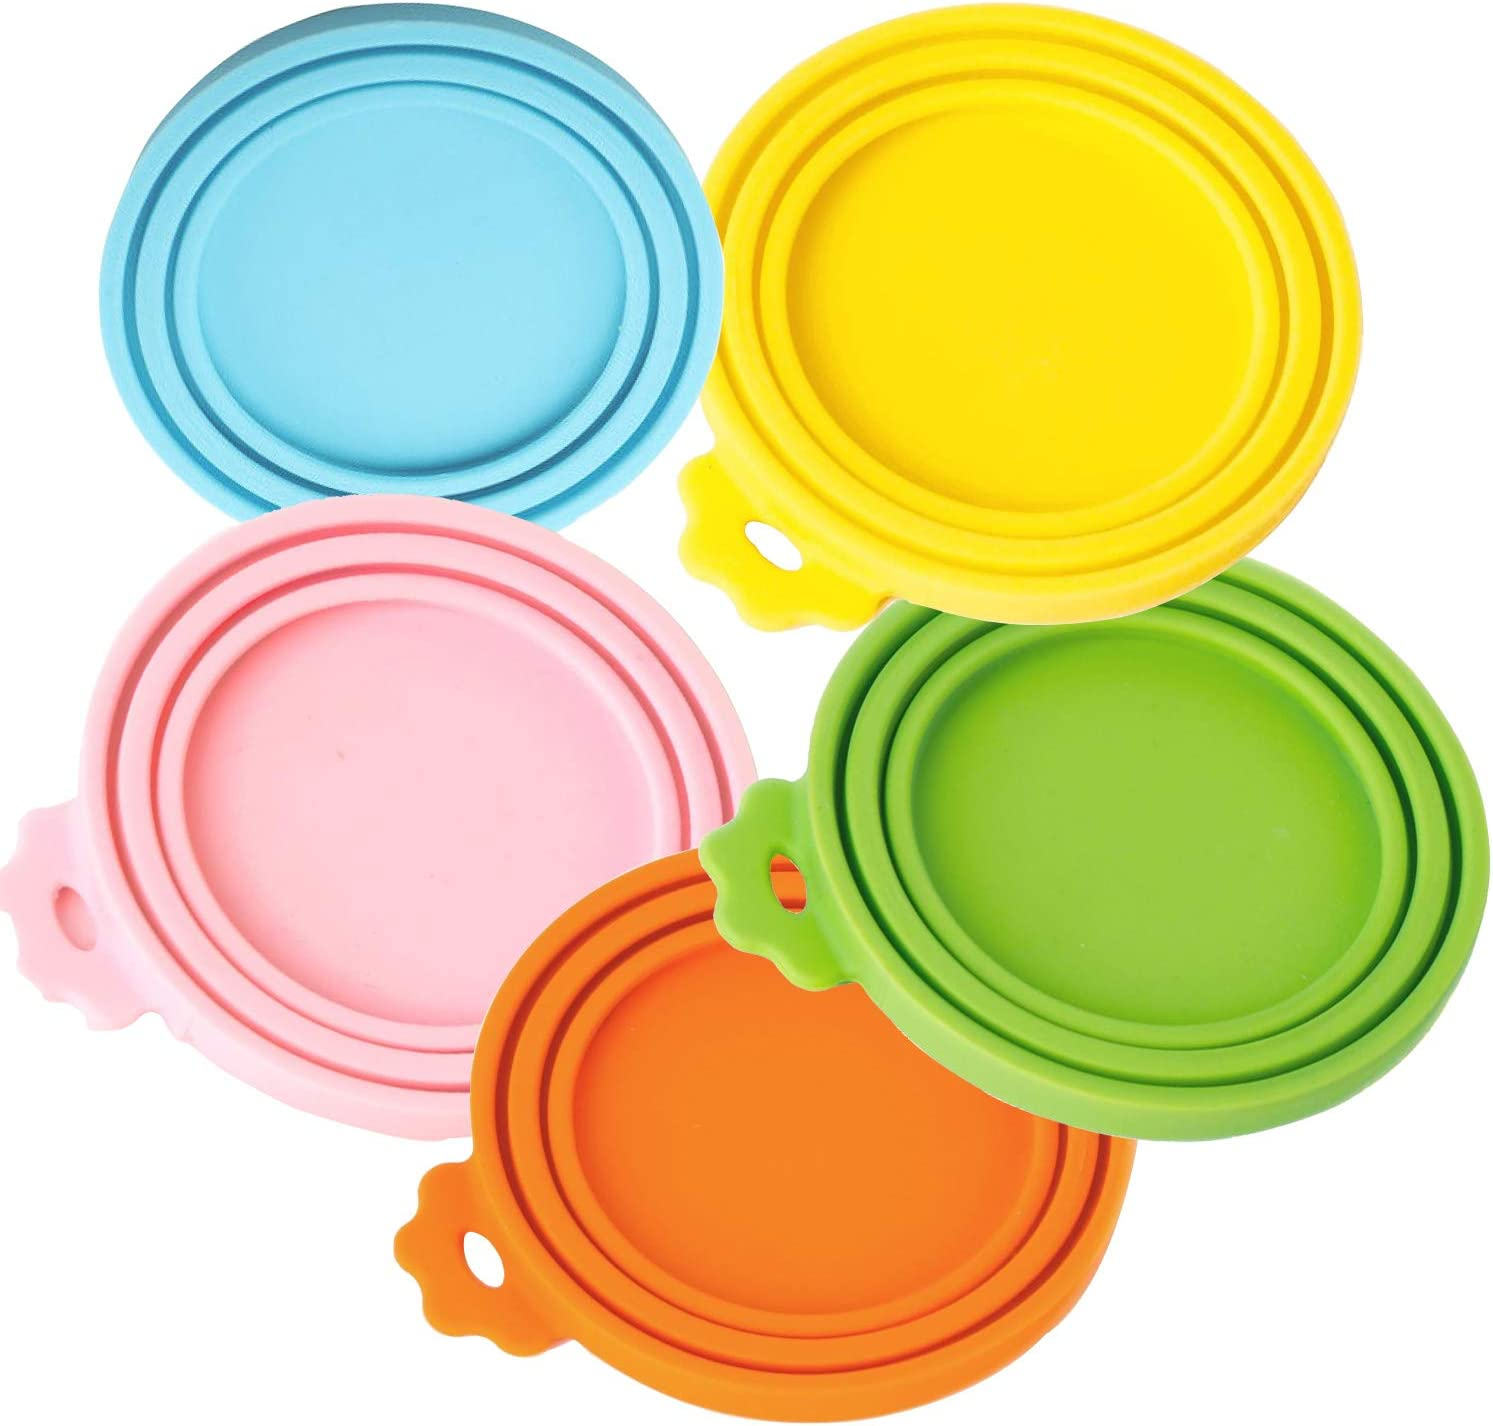 WeTest Pet Can Lids - Universal Cat or Dog Food Can Cover Made by Food Grade Silicone, 5 packs Fits Most Standard Size Can